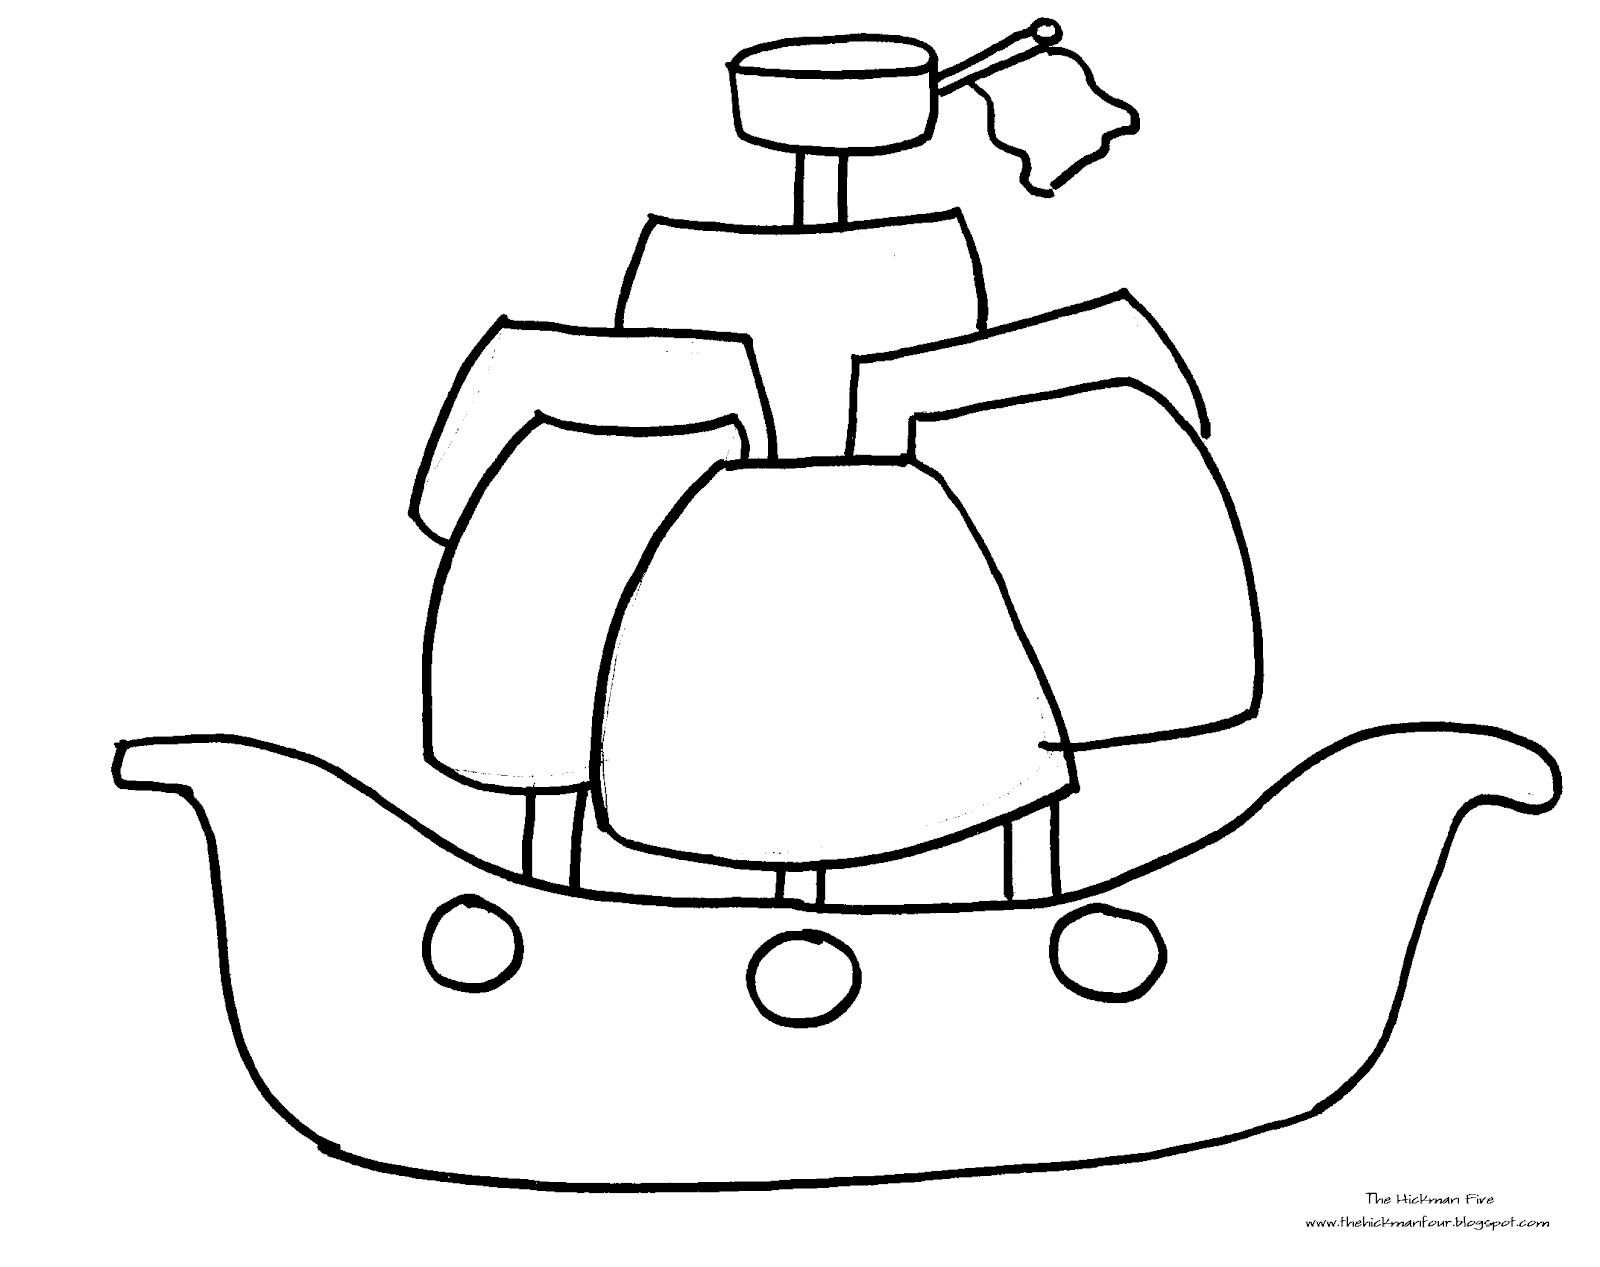 1600x1267 Lovely Pirate Ship Coloring Pages For Kids